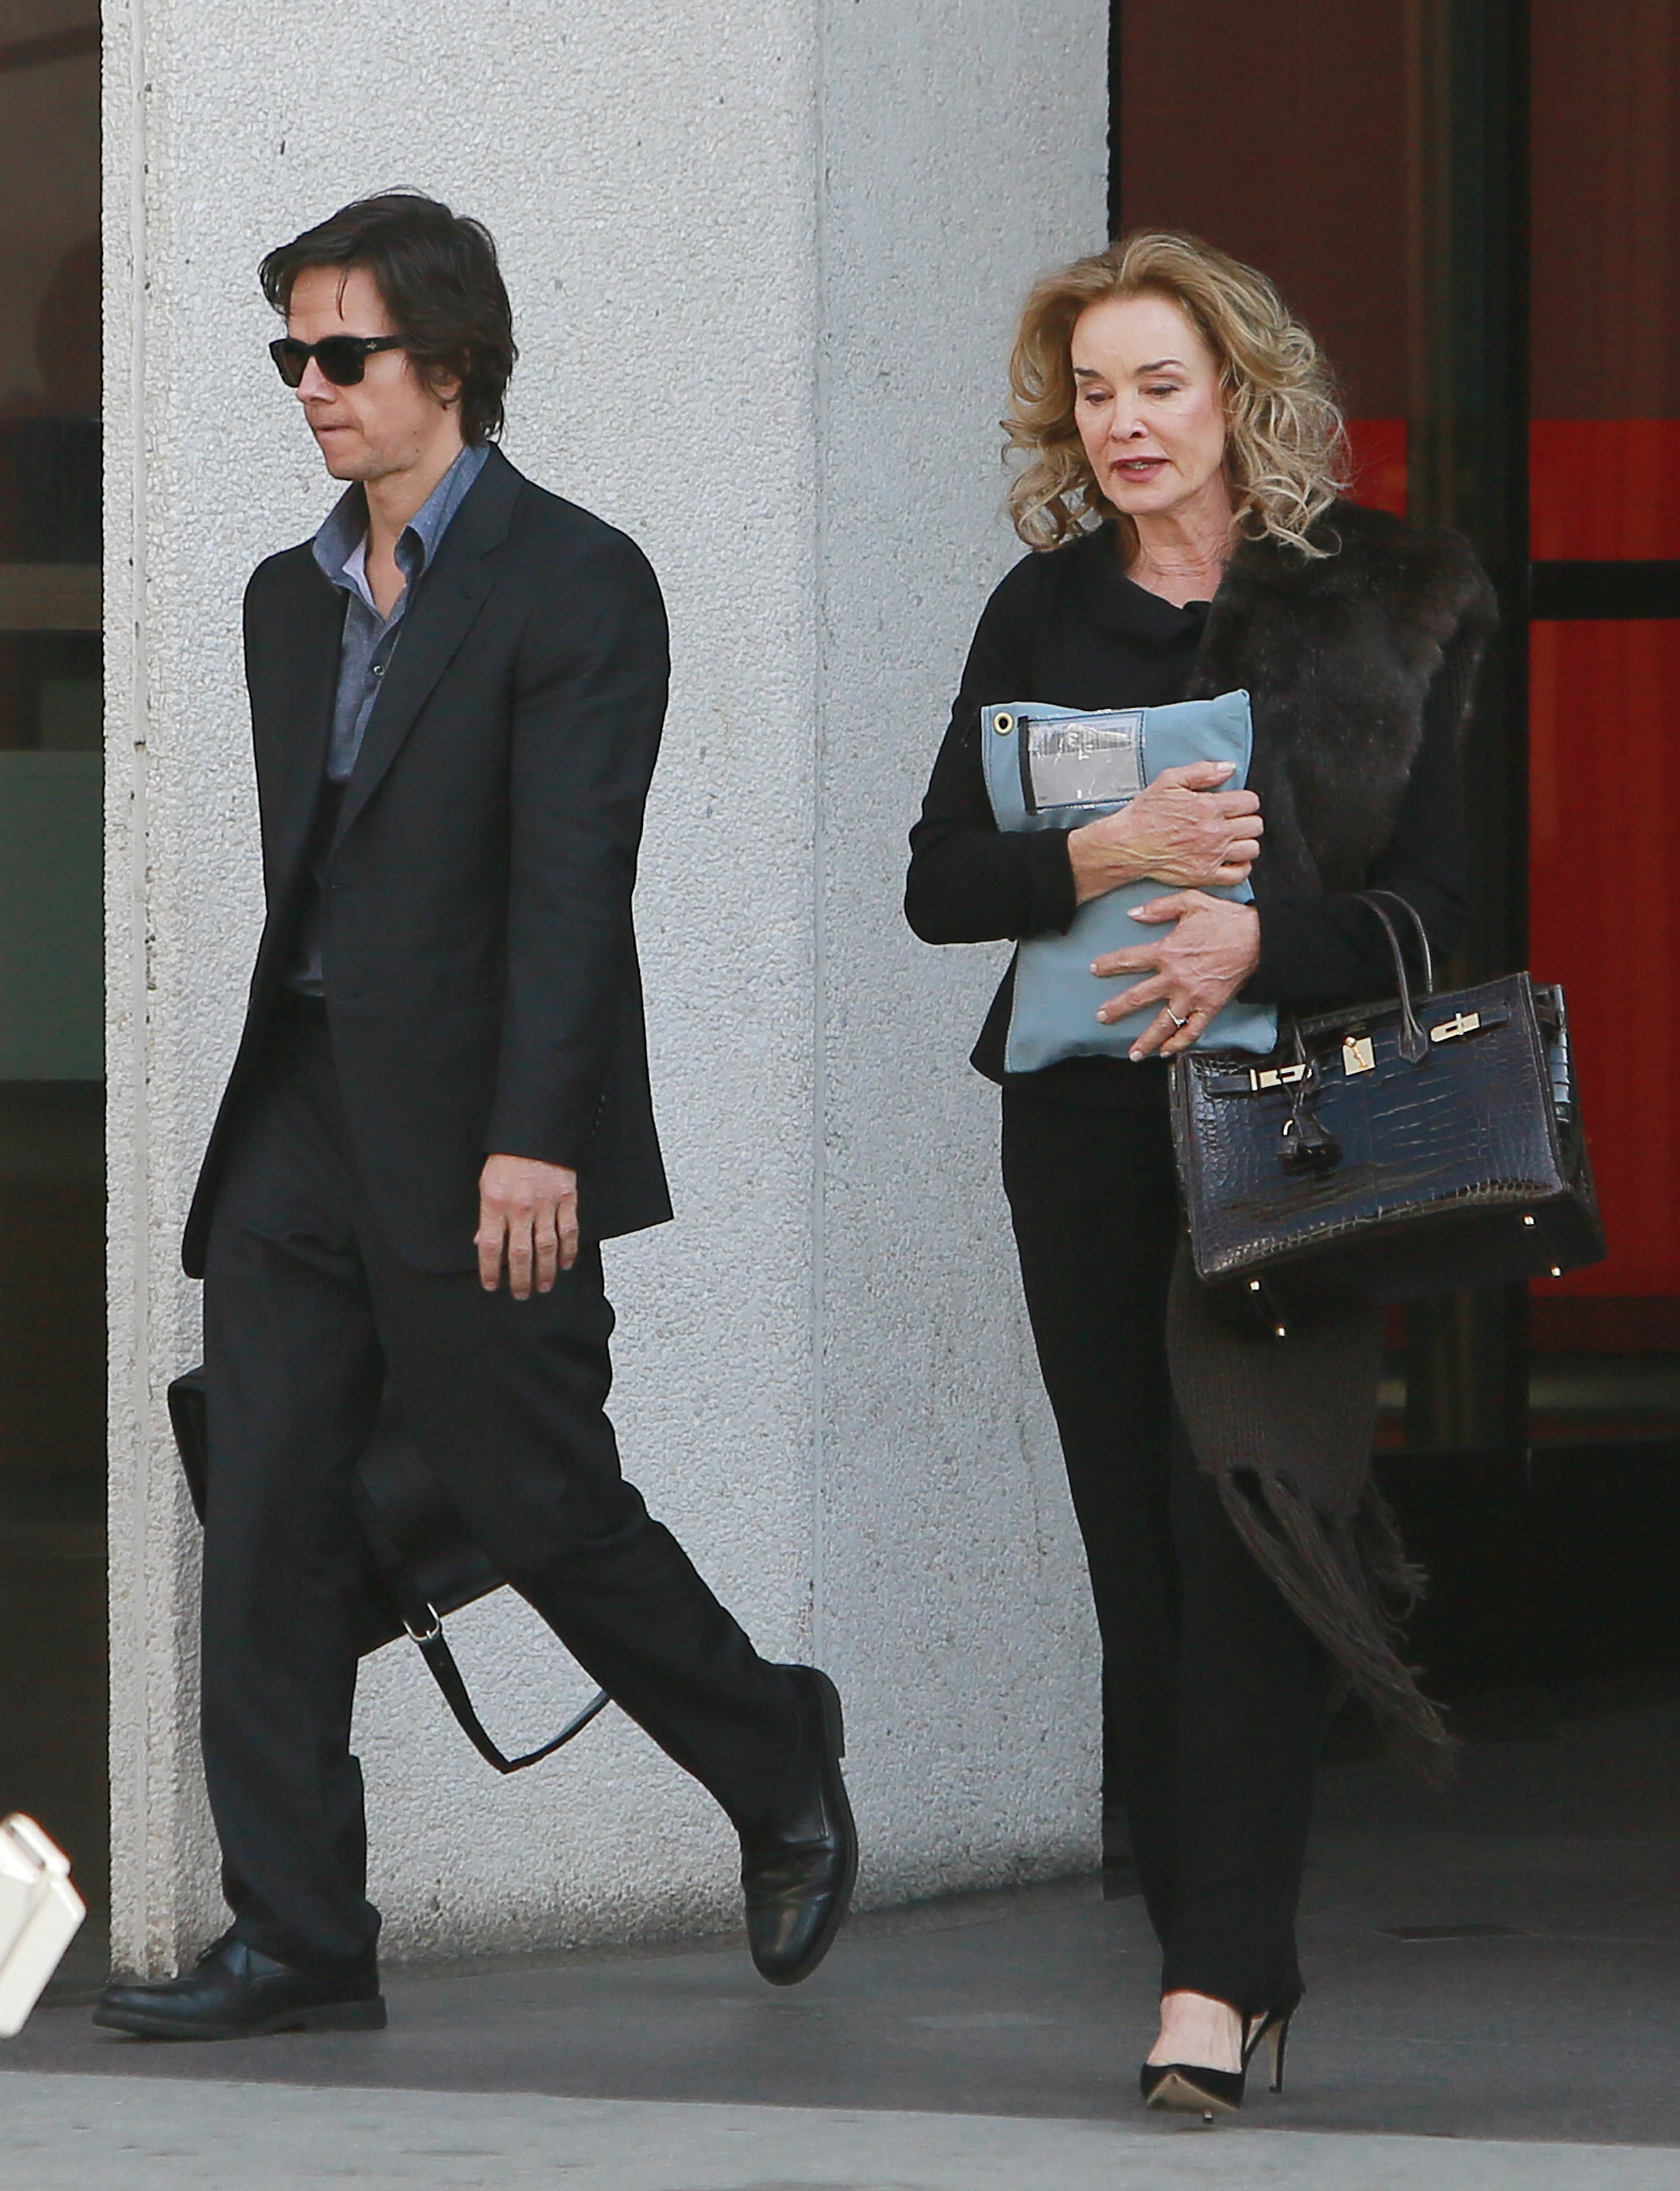 Jessica Lange All In To Play Mark Wahlberg's Mom In 'The